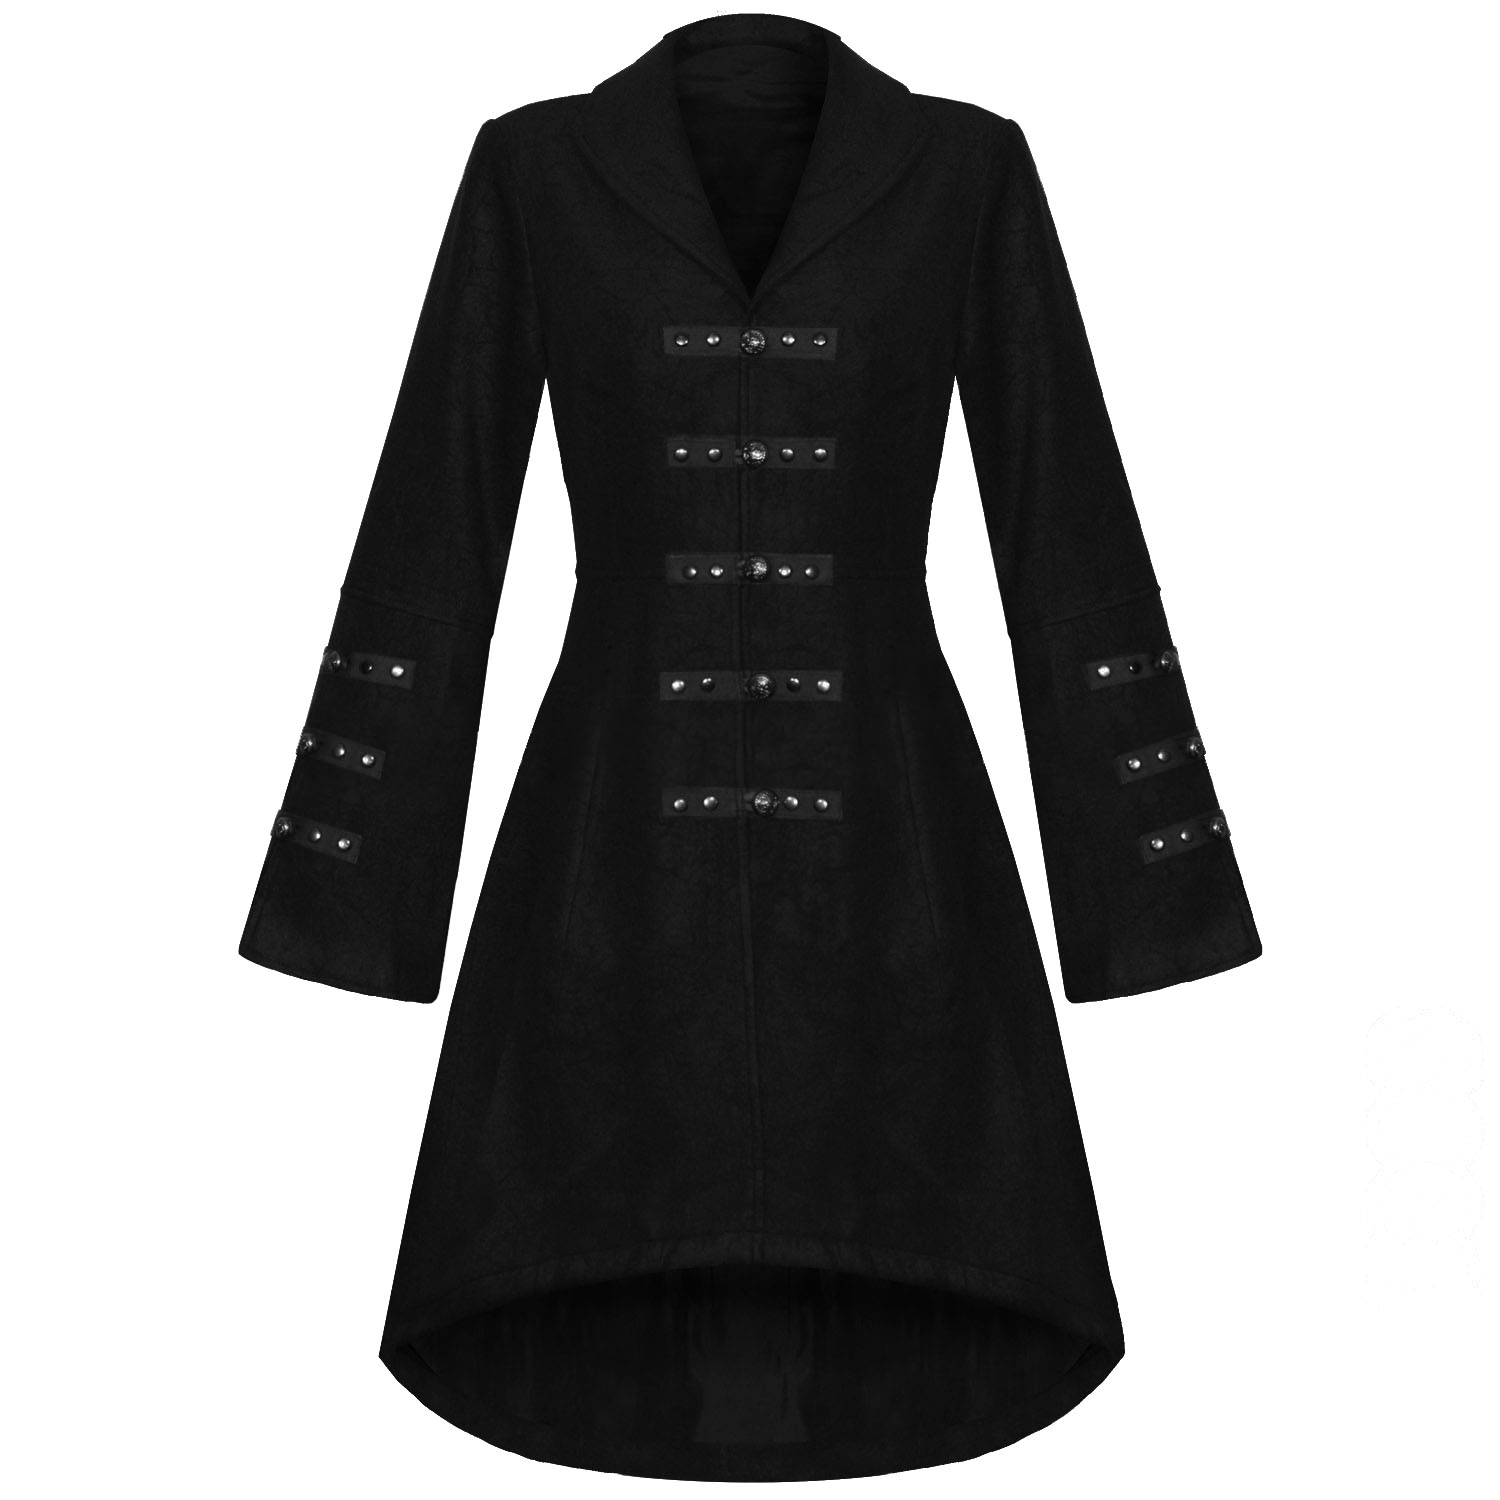 LADIES NEW BLACK GOTHIC MILITARY STEAMPUNK WOOL EFFECT LONG JACKET ...